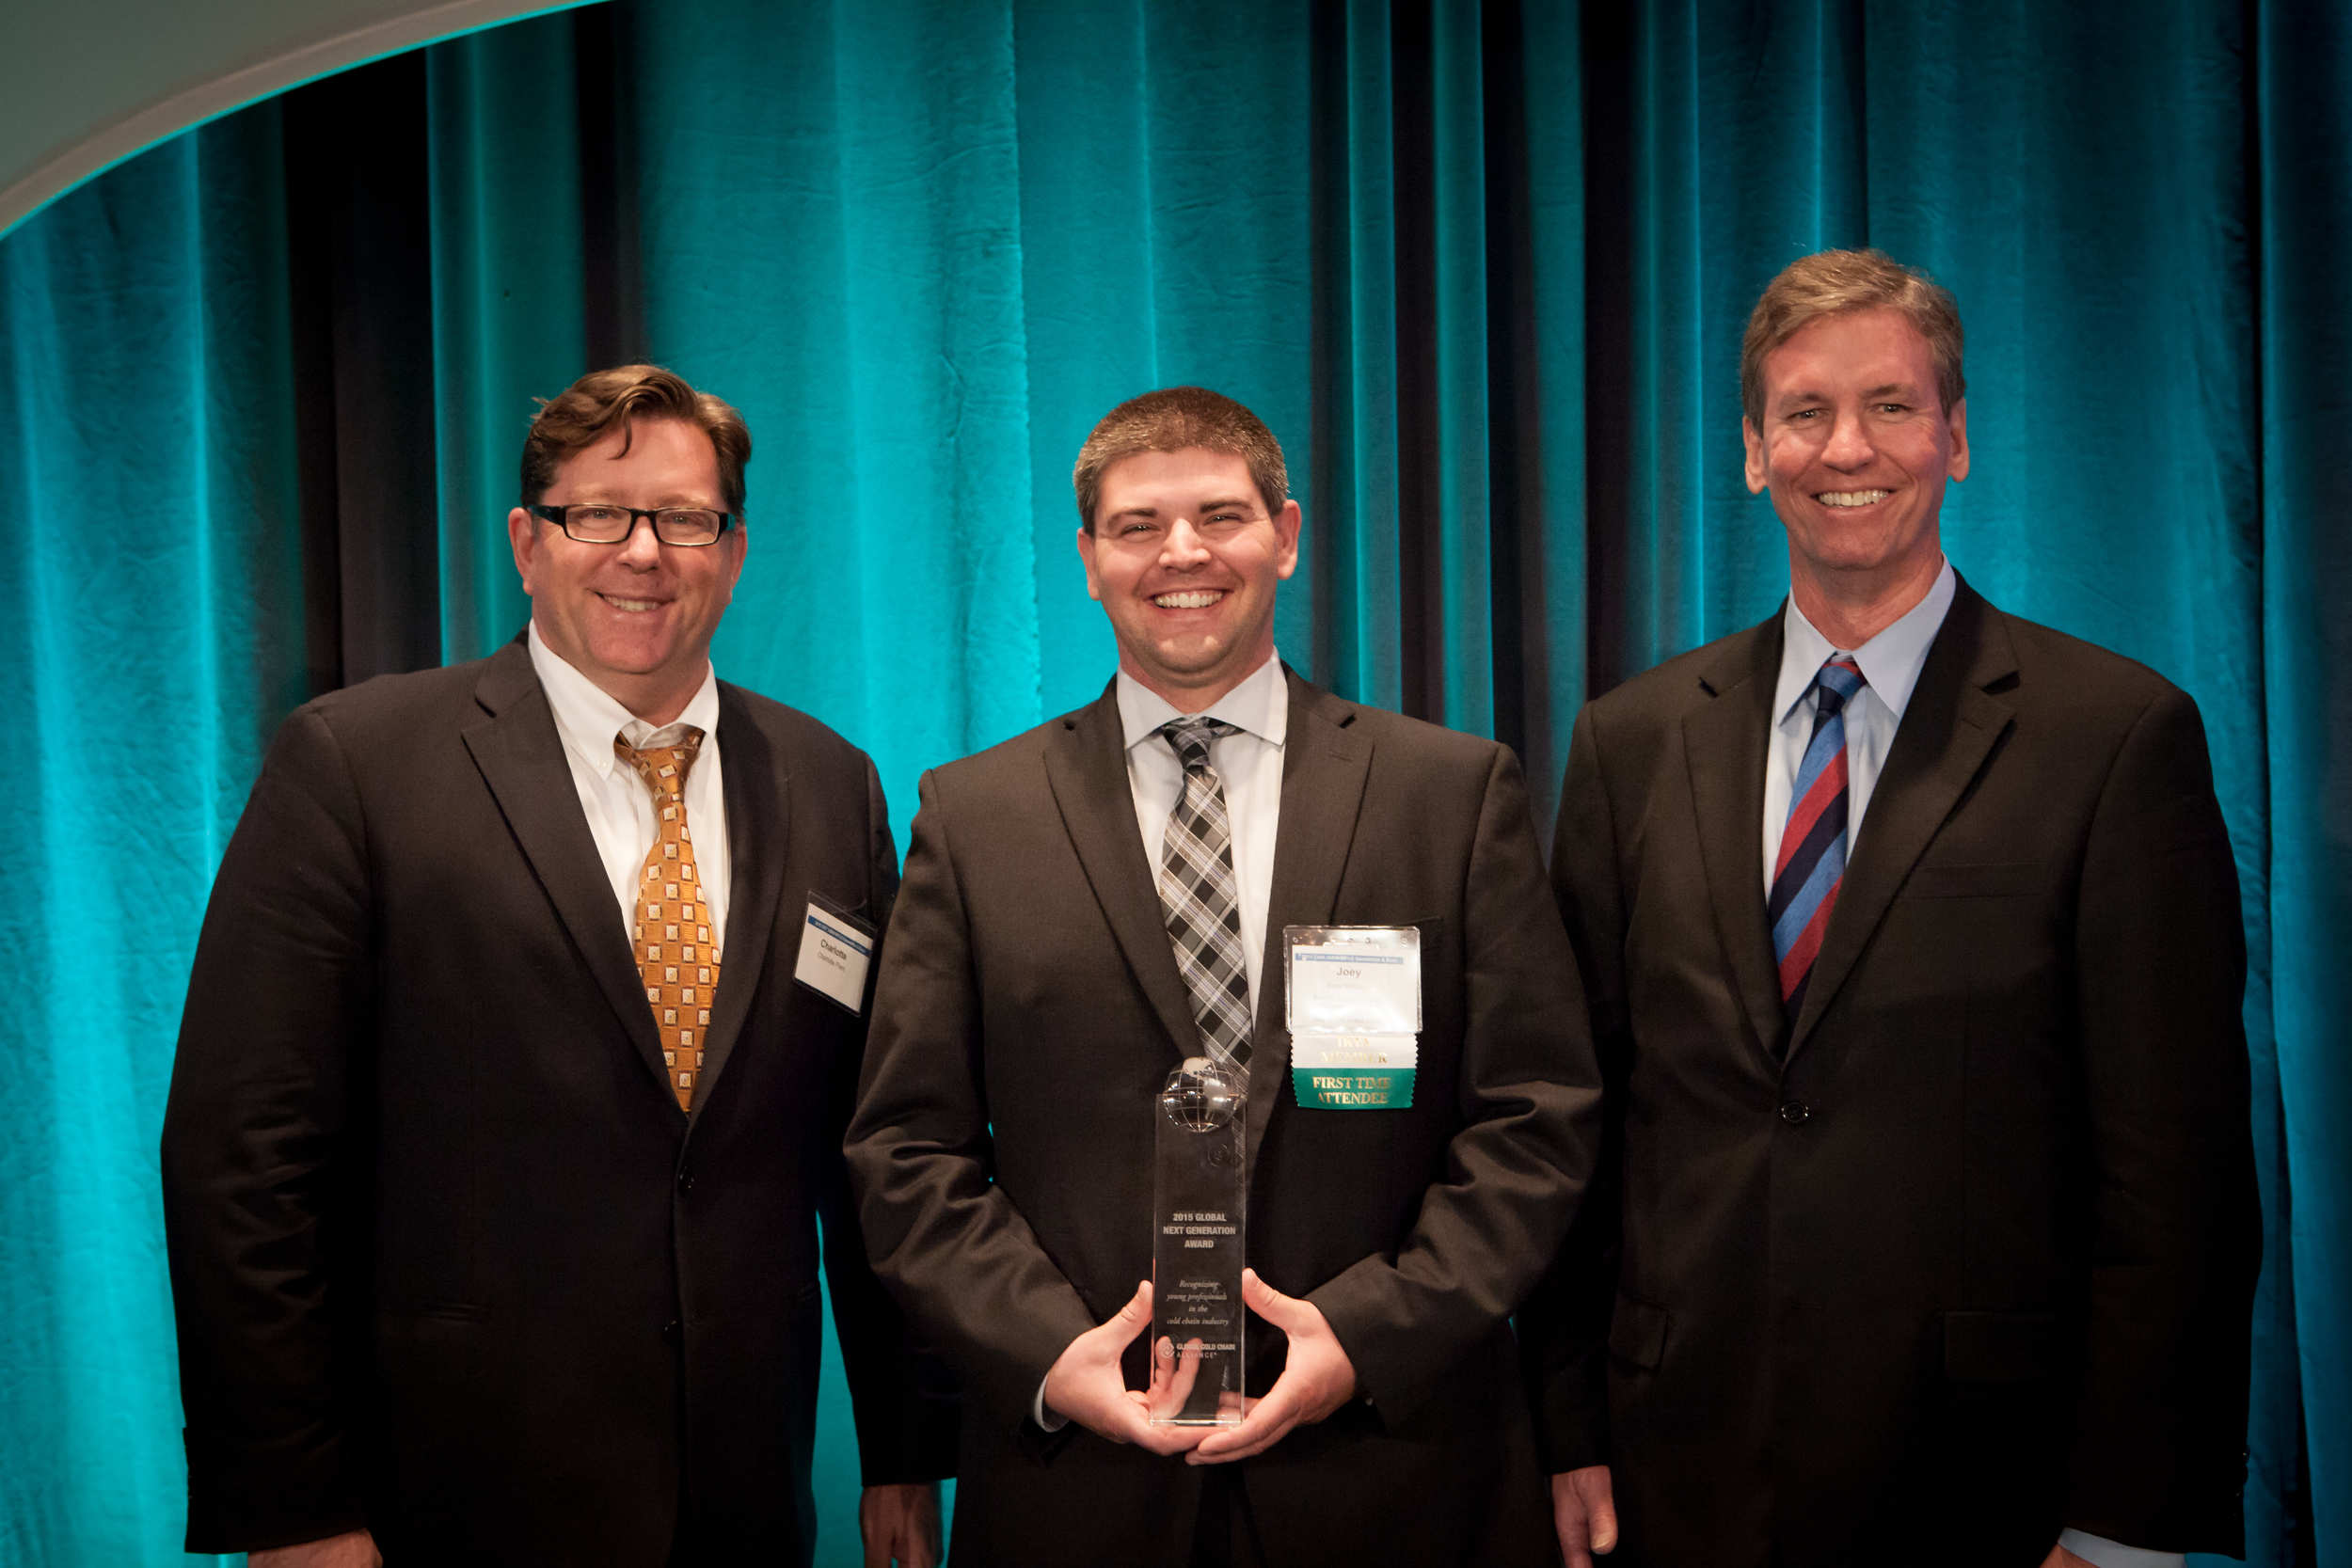 2014-2015 WFLO Chairman Frank Plant (left) and 2014-2015 IARW Chairman Tom Poe (right) pictured with the 2015 GCCA Global NextGen Award winner Joey Williams.